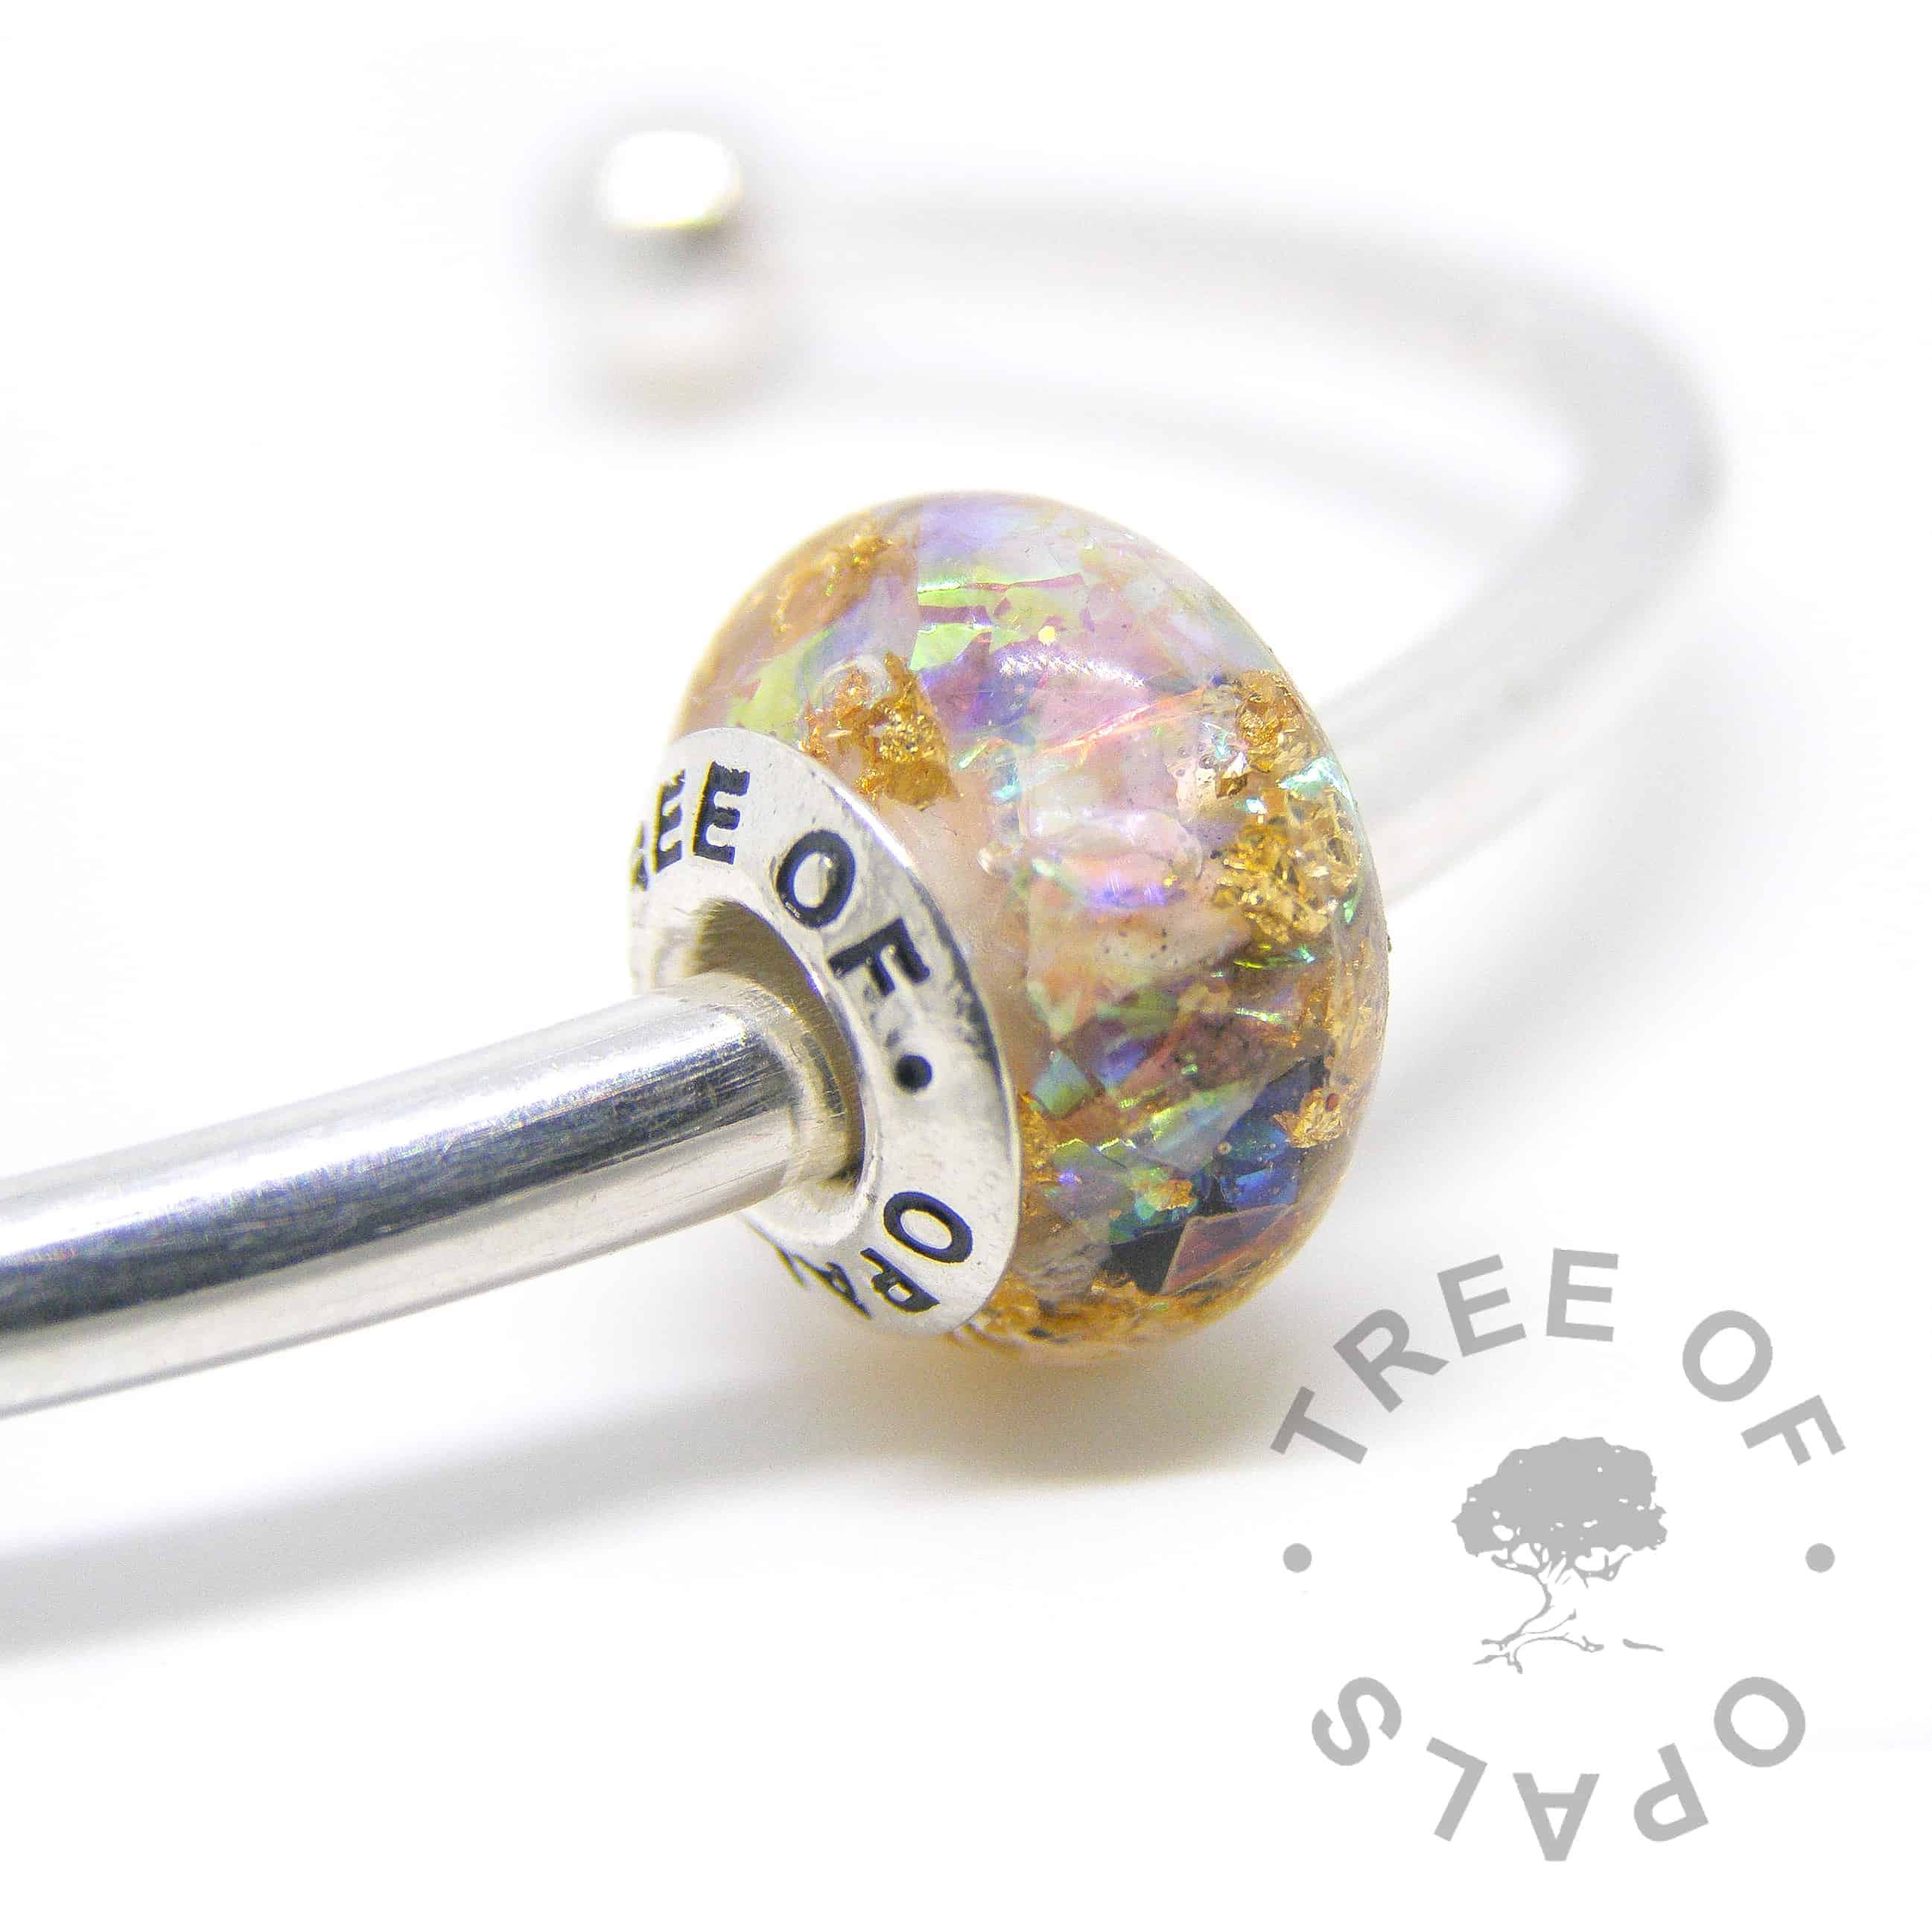 cremation ashes bead in resin, white opalescent, moonstone June birthstone and genuine gold leaf with a solid sterling silver Tree of Opals branded core cremation ash charm